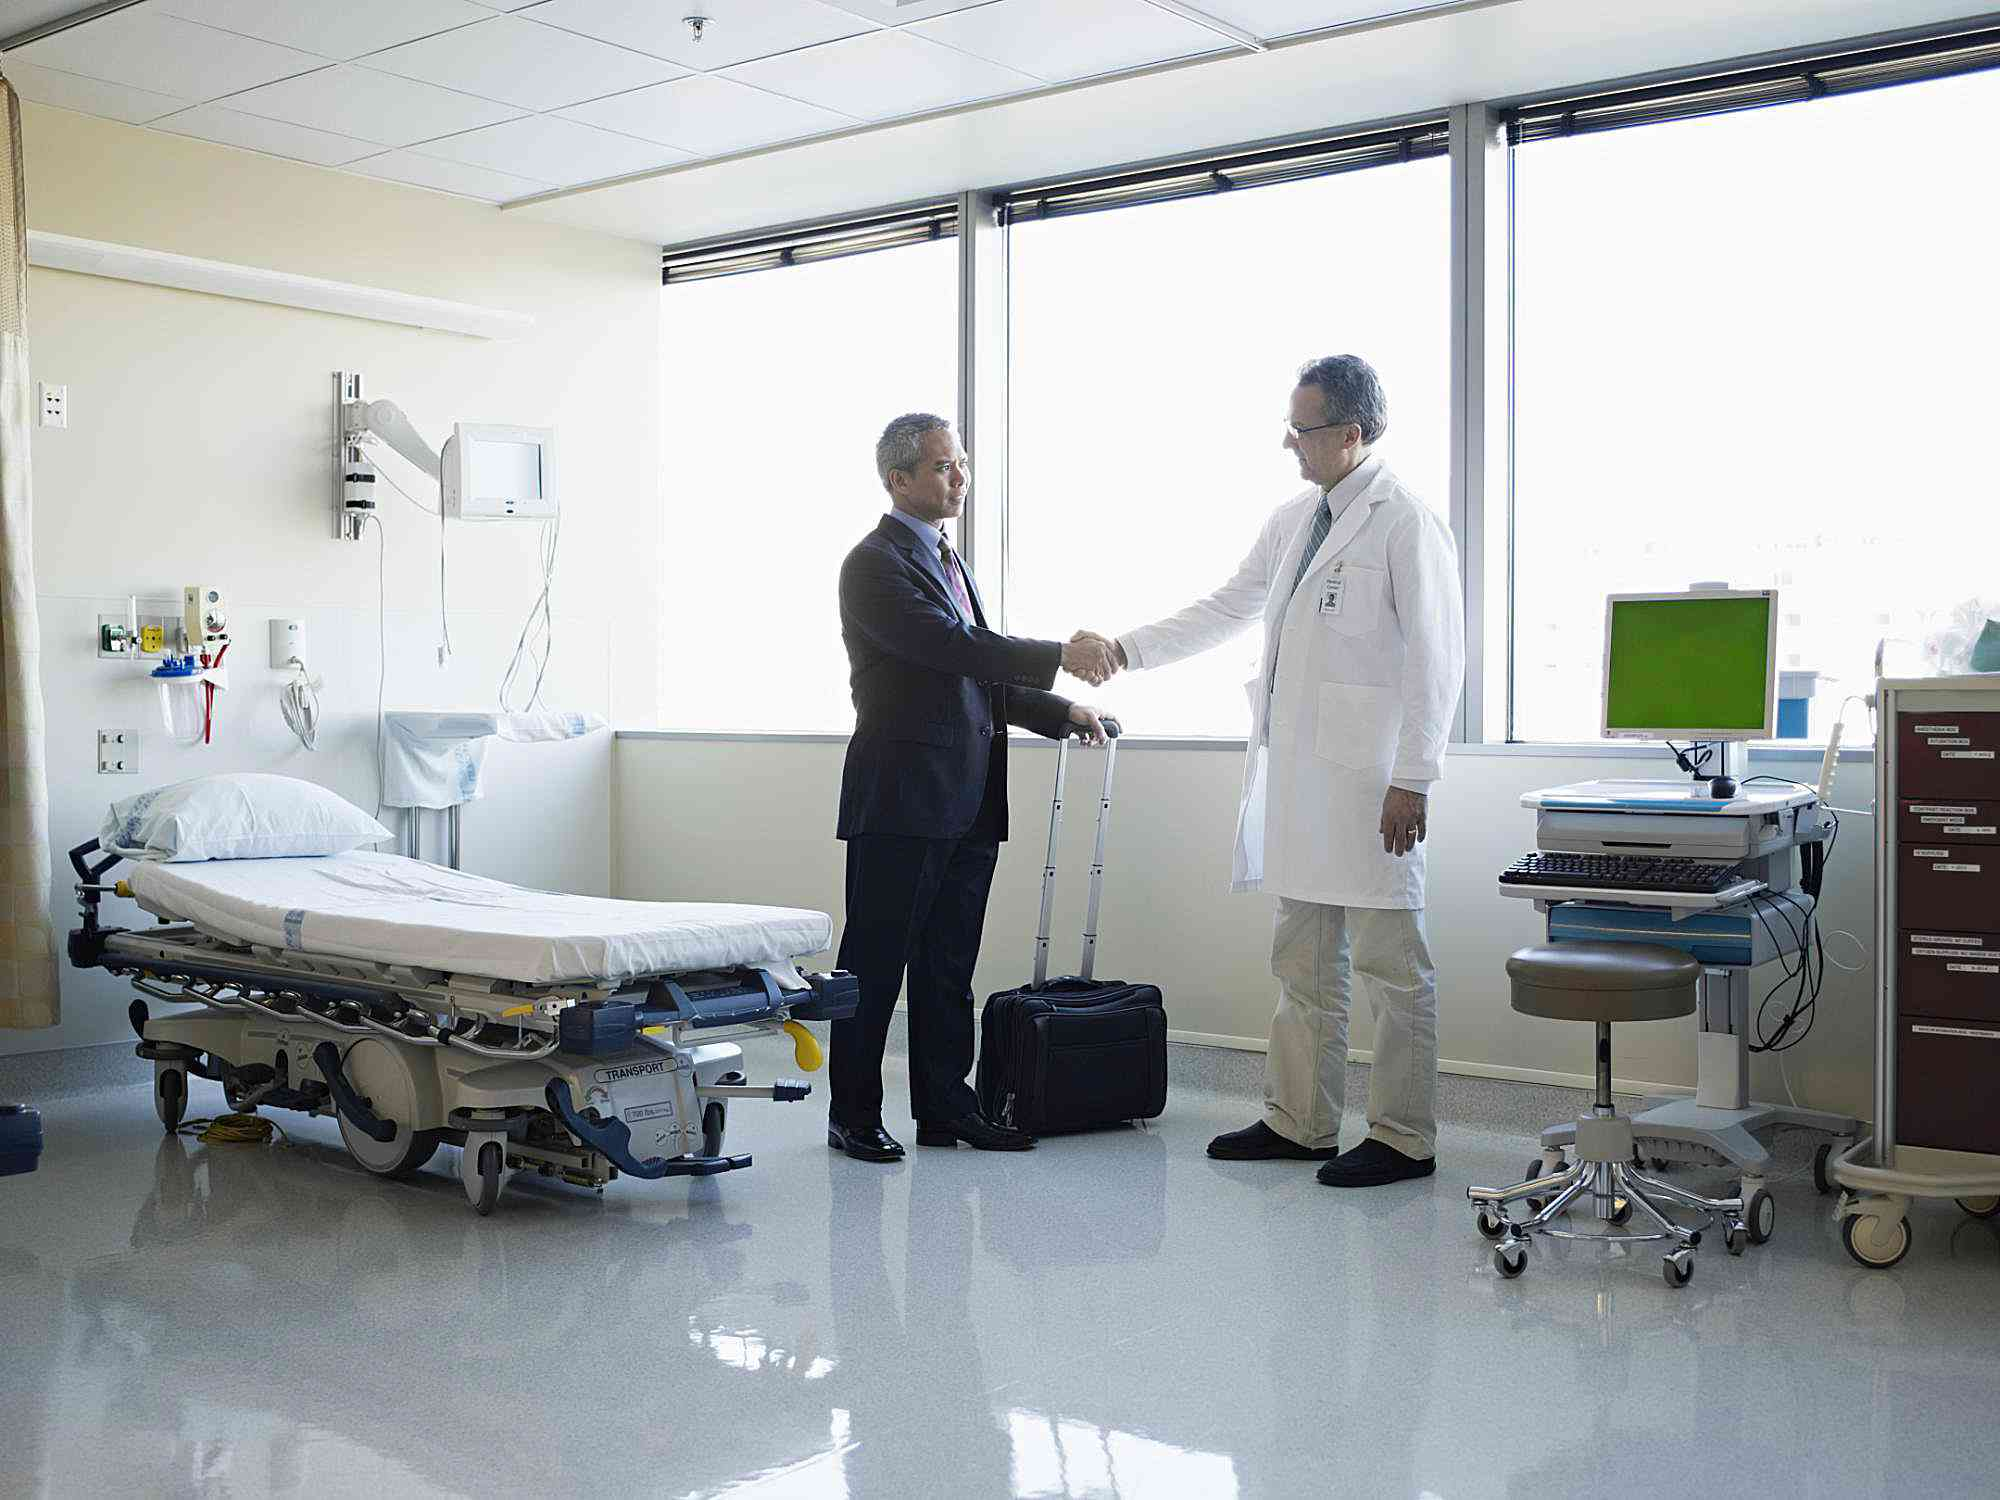 Non-Clinical Medical Industry Jobs